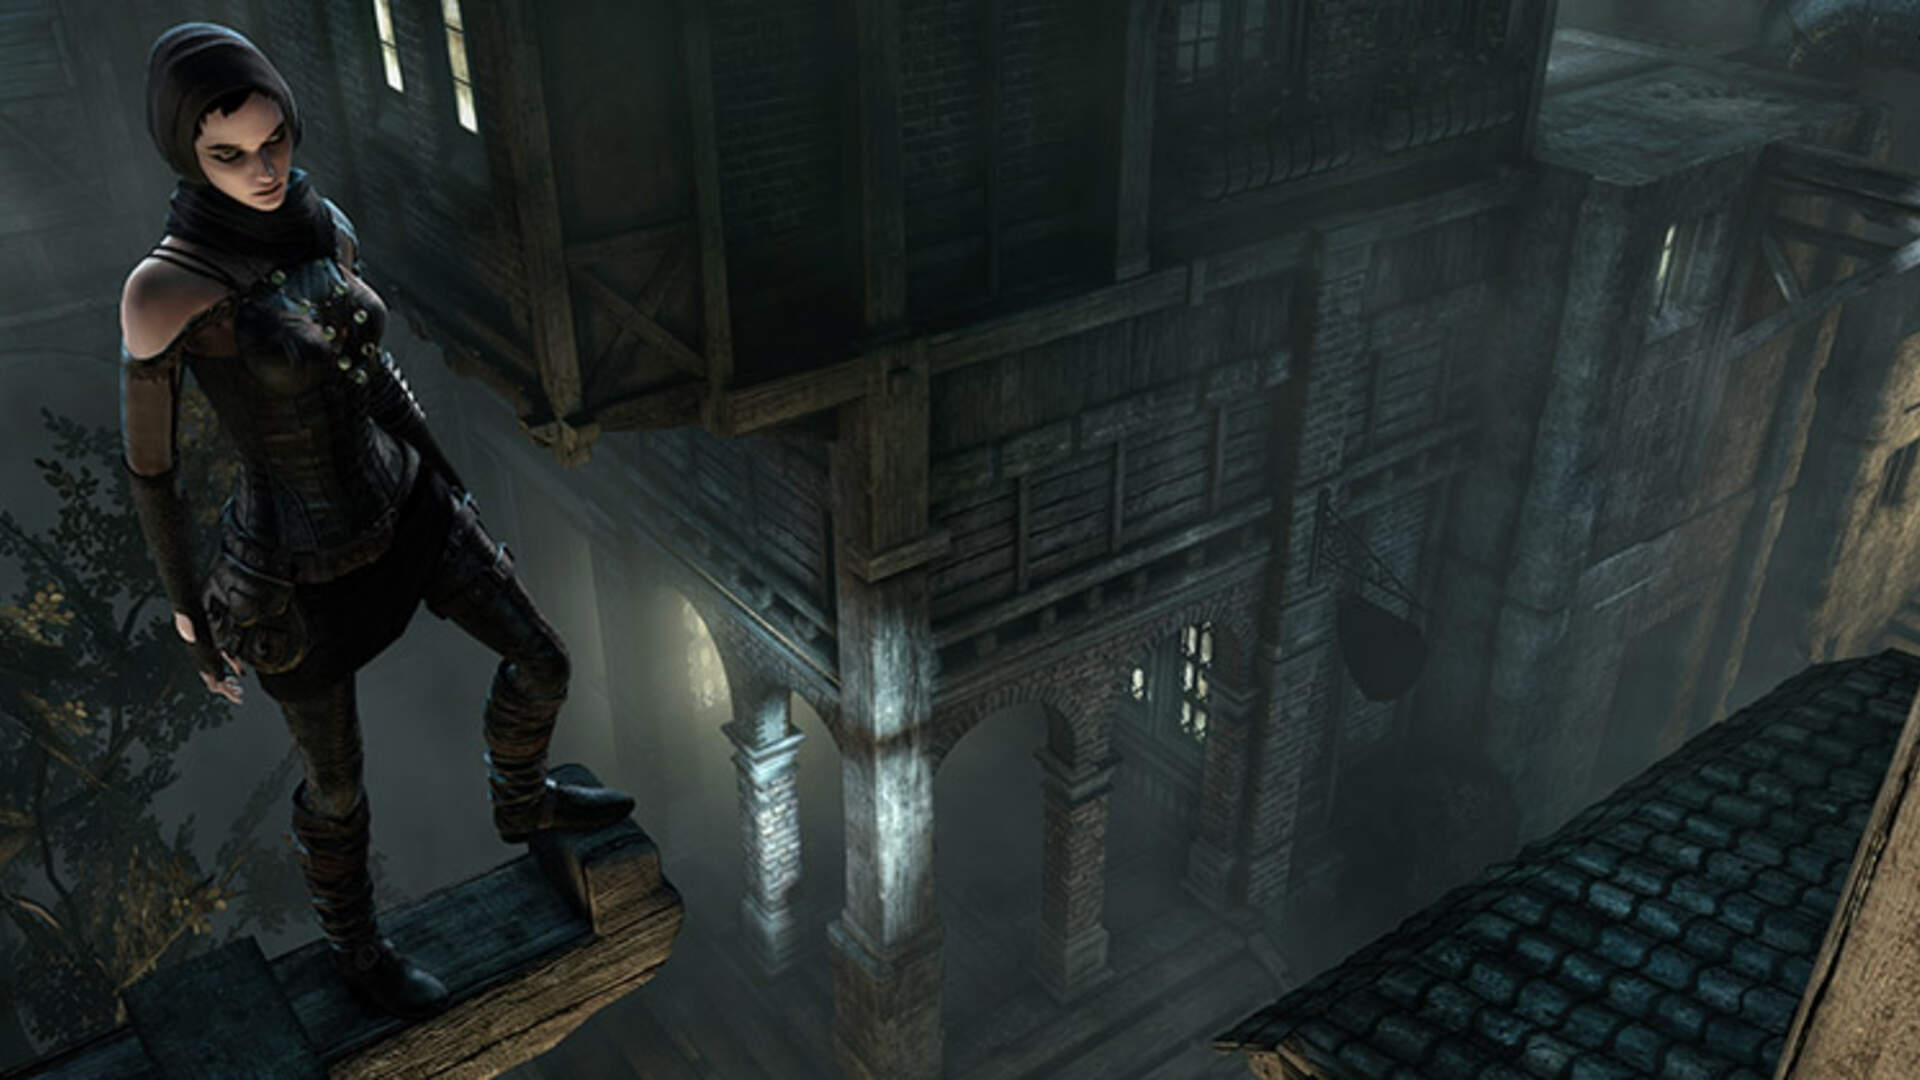 Thief PlayStation 4 Review: Not Quite a Master Criminal